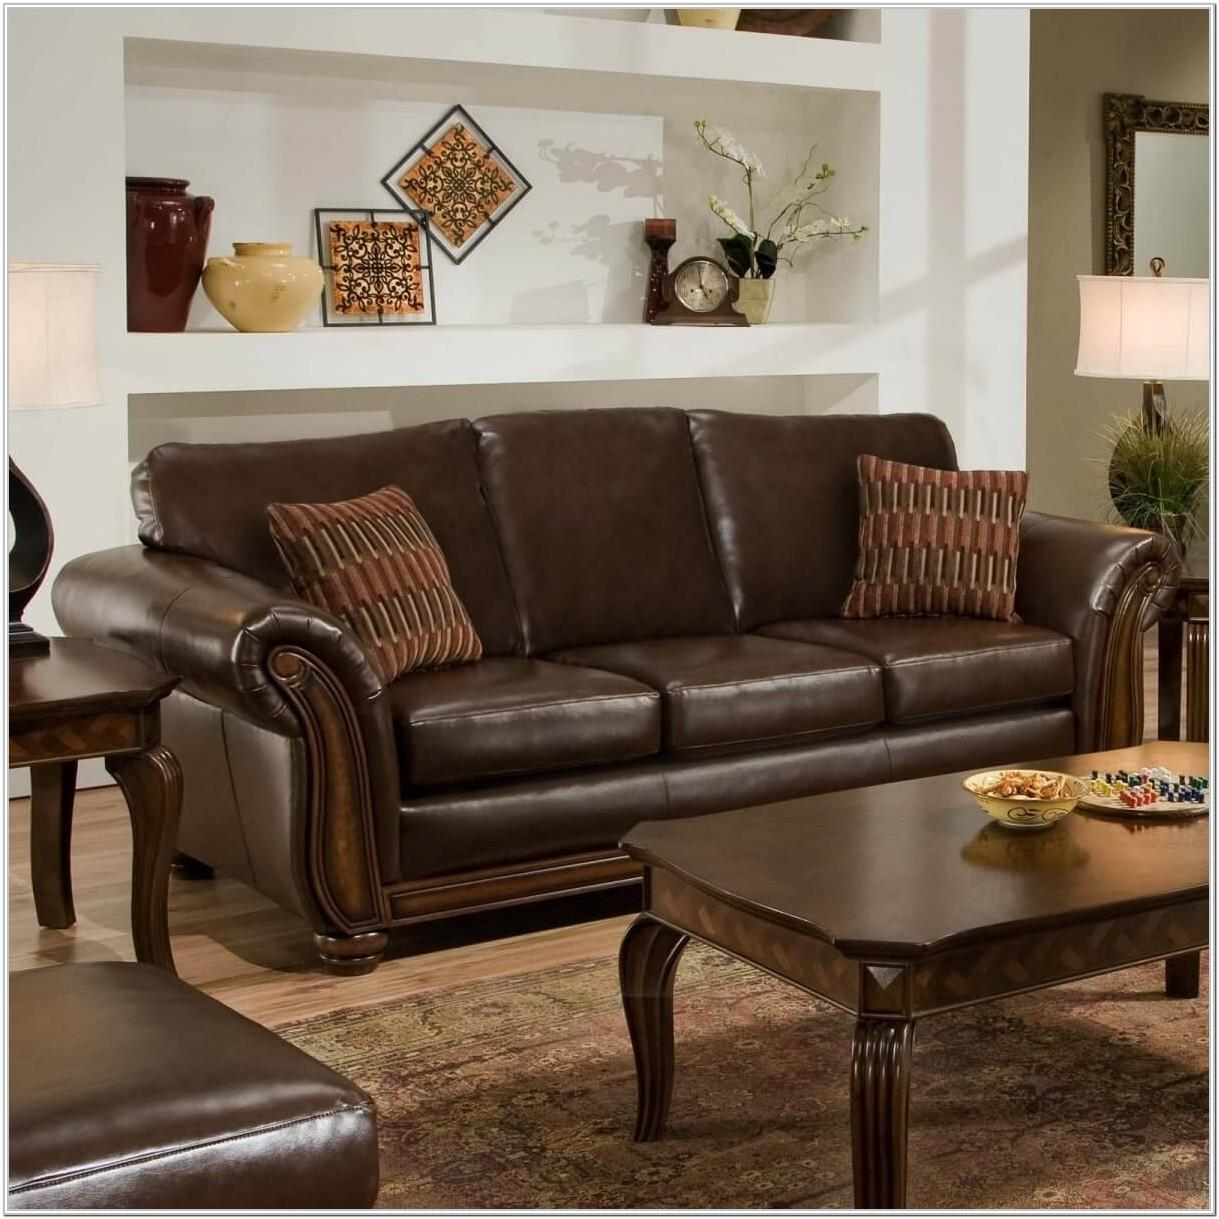 Living Room Color Ideas For Tan Furniture